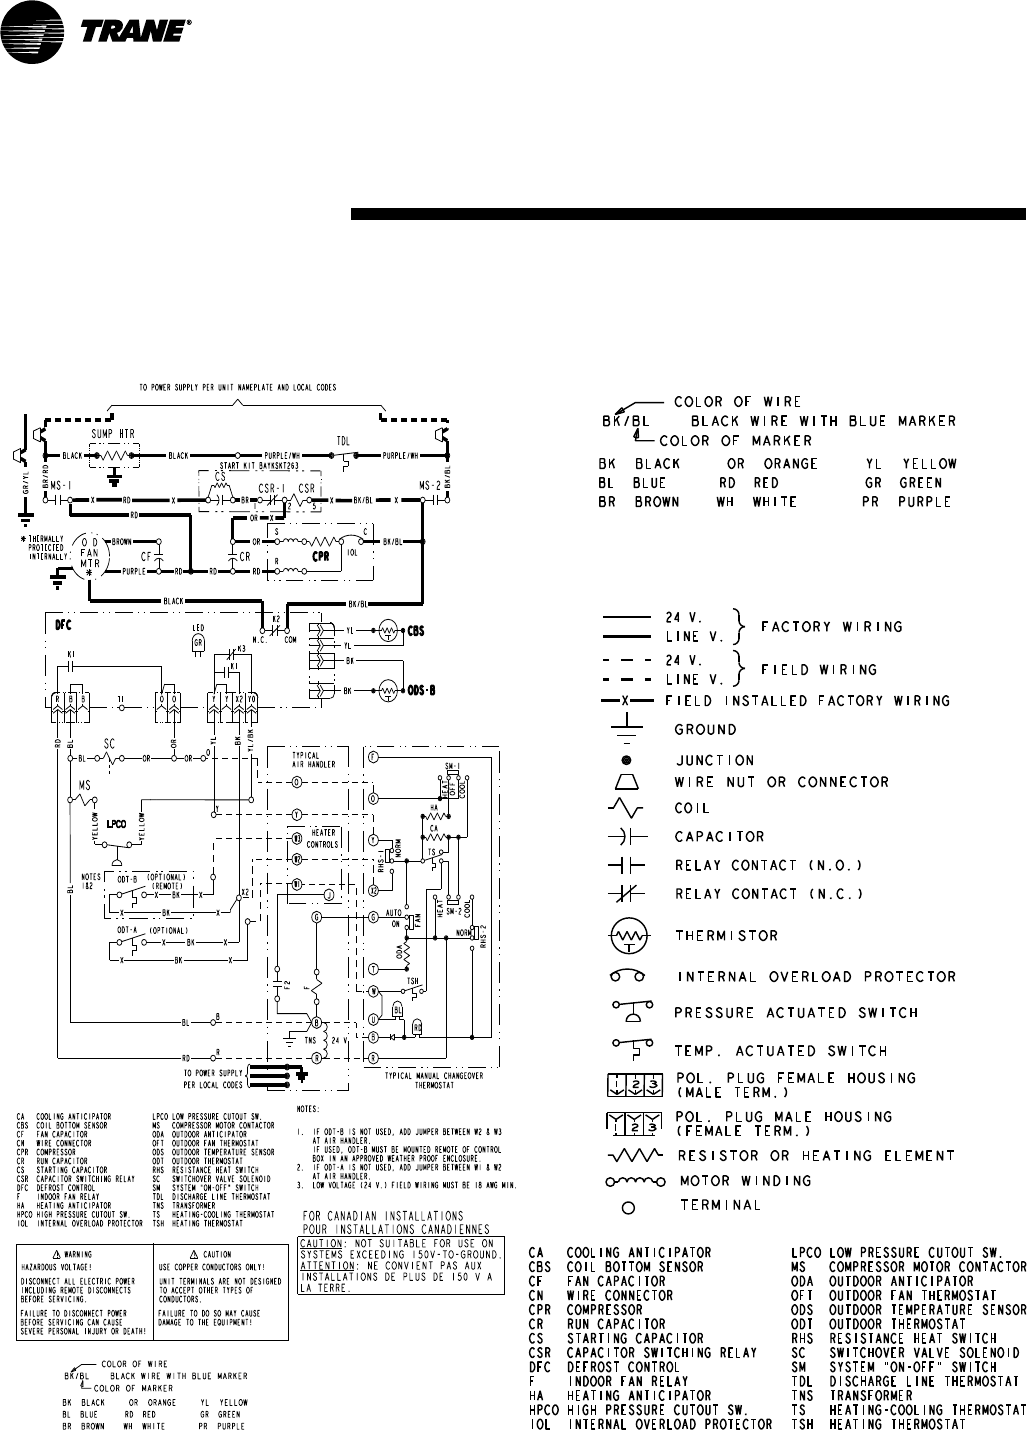 Trane Gas Furnace Wiring Diagram Reveolution Of Mobile Home Free Picture Wsc060 27 Images Lennox Pulse Goodman